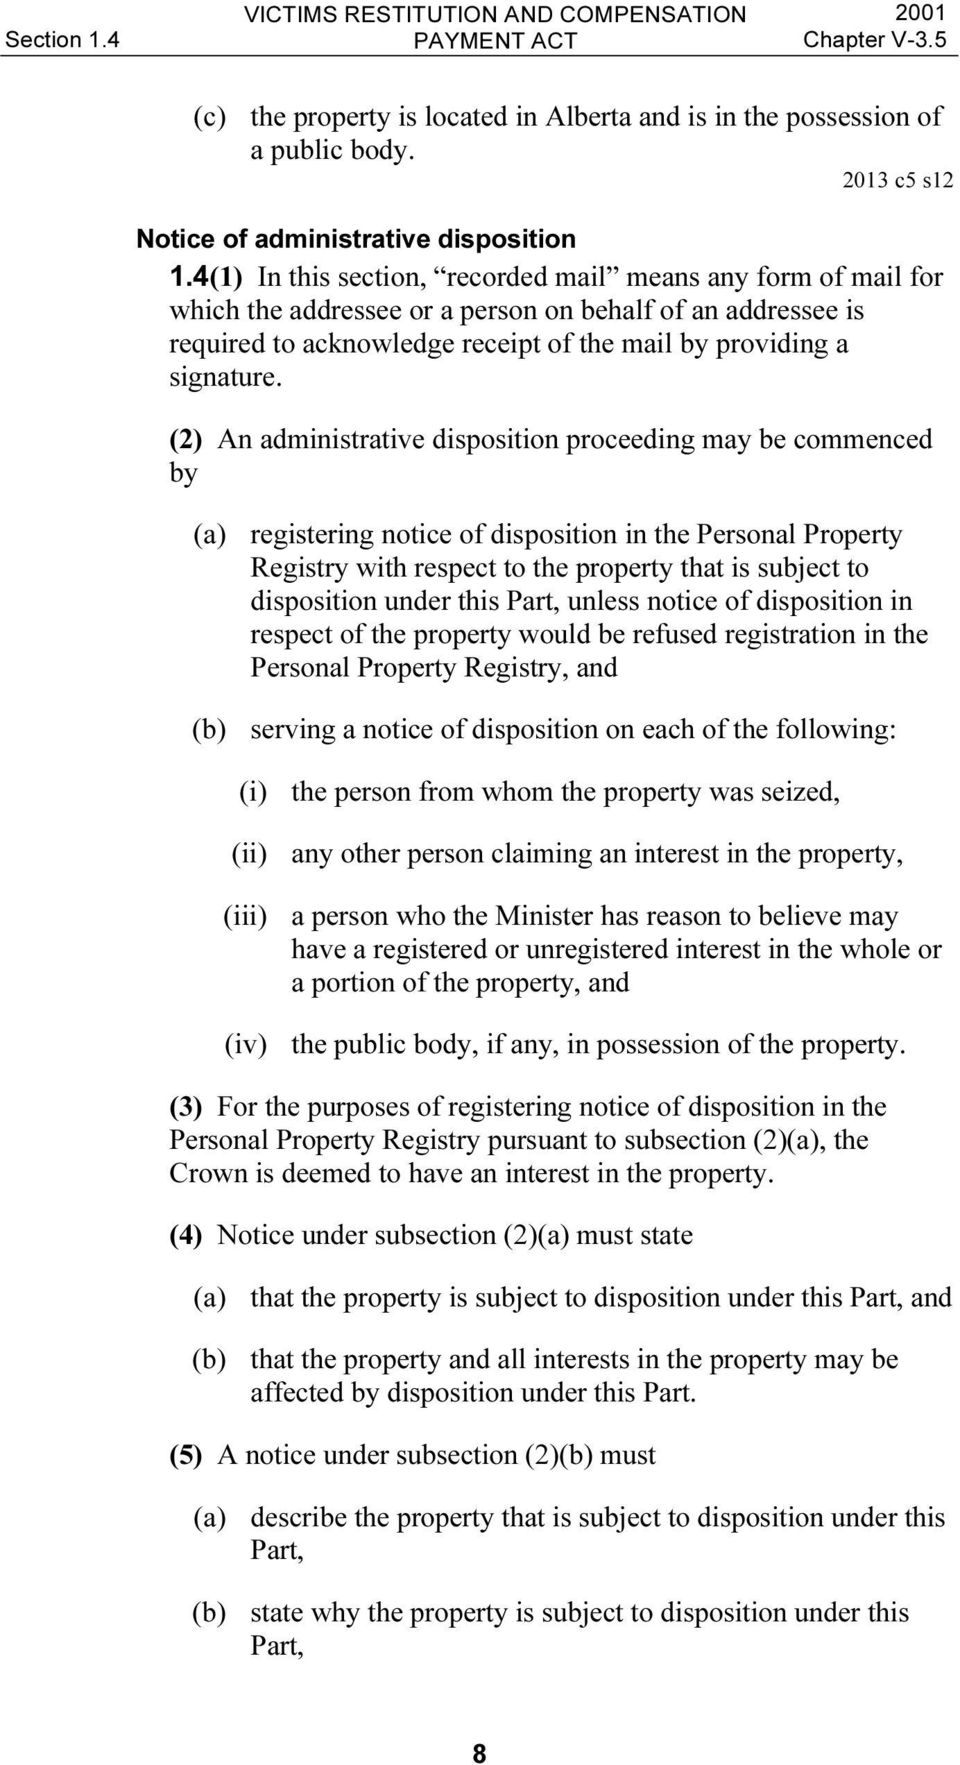 (2) An administrative disposition proceeding may be commenced by (a) registering notice of disposition in the Personal Property Registry with respect to the property that is subject to disposition